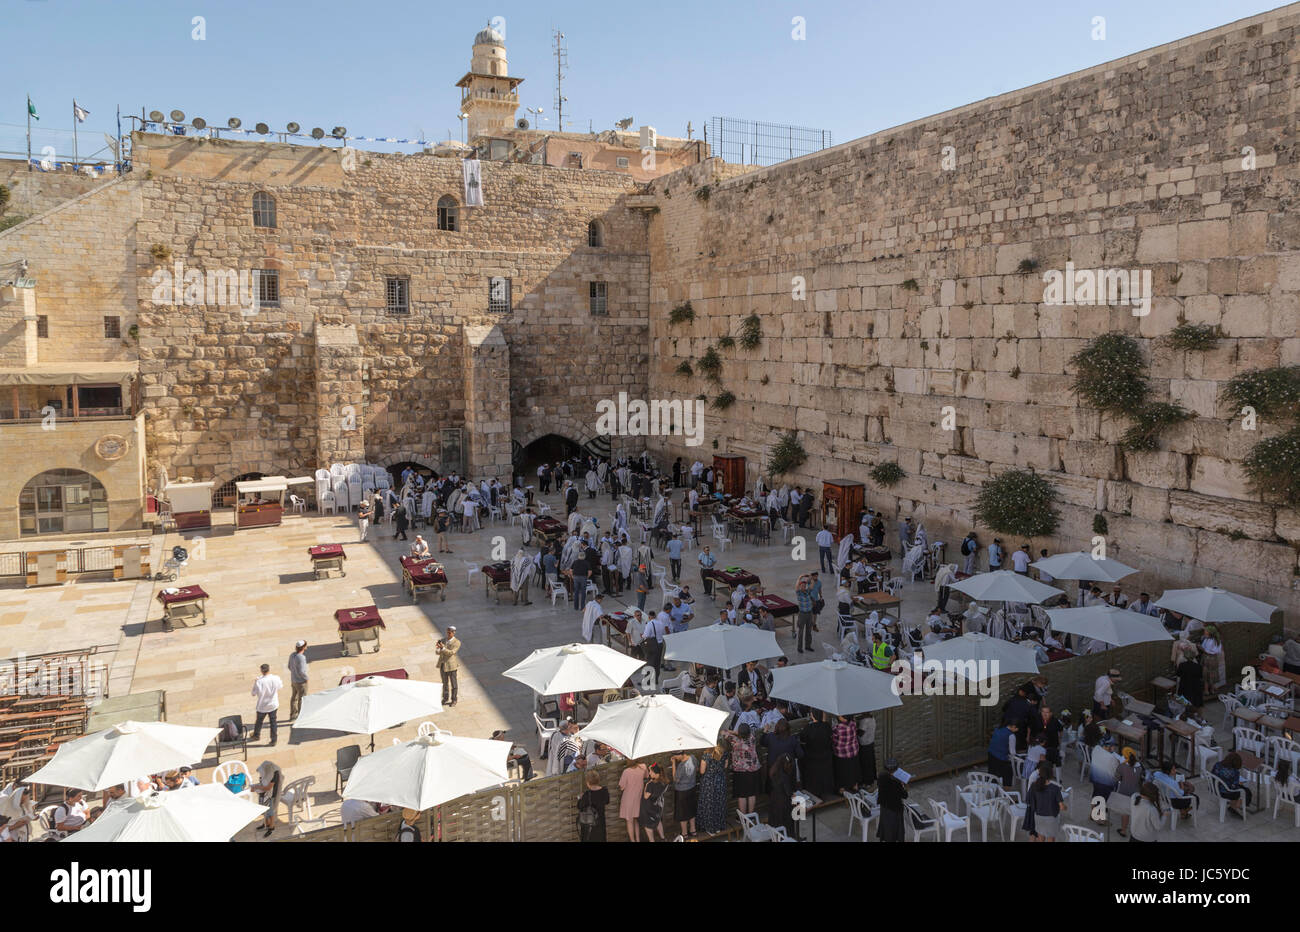 People praying at the Wailing Wall, at the Western Wall Plaza in the Jewish Quarter of the Old City, Jerusalem, - Stock Image